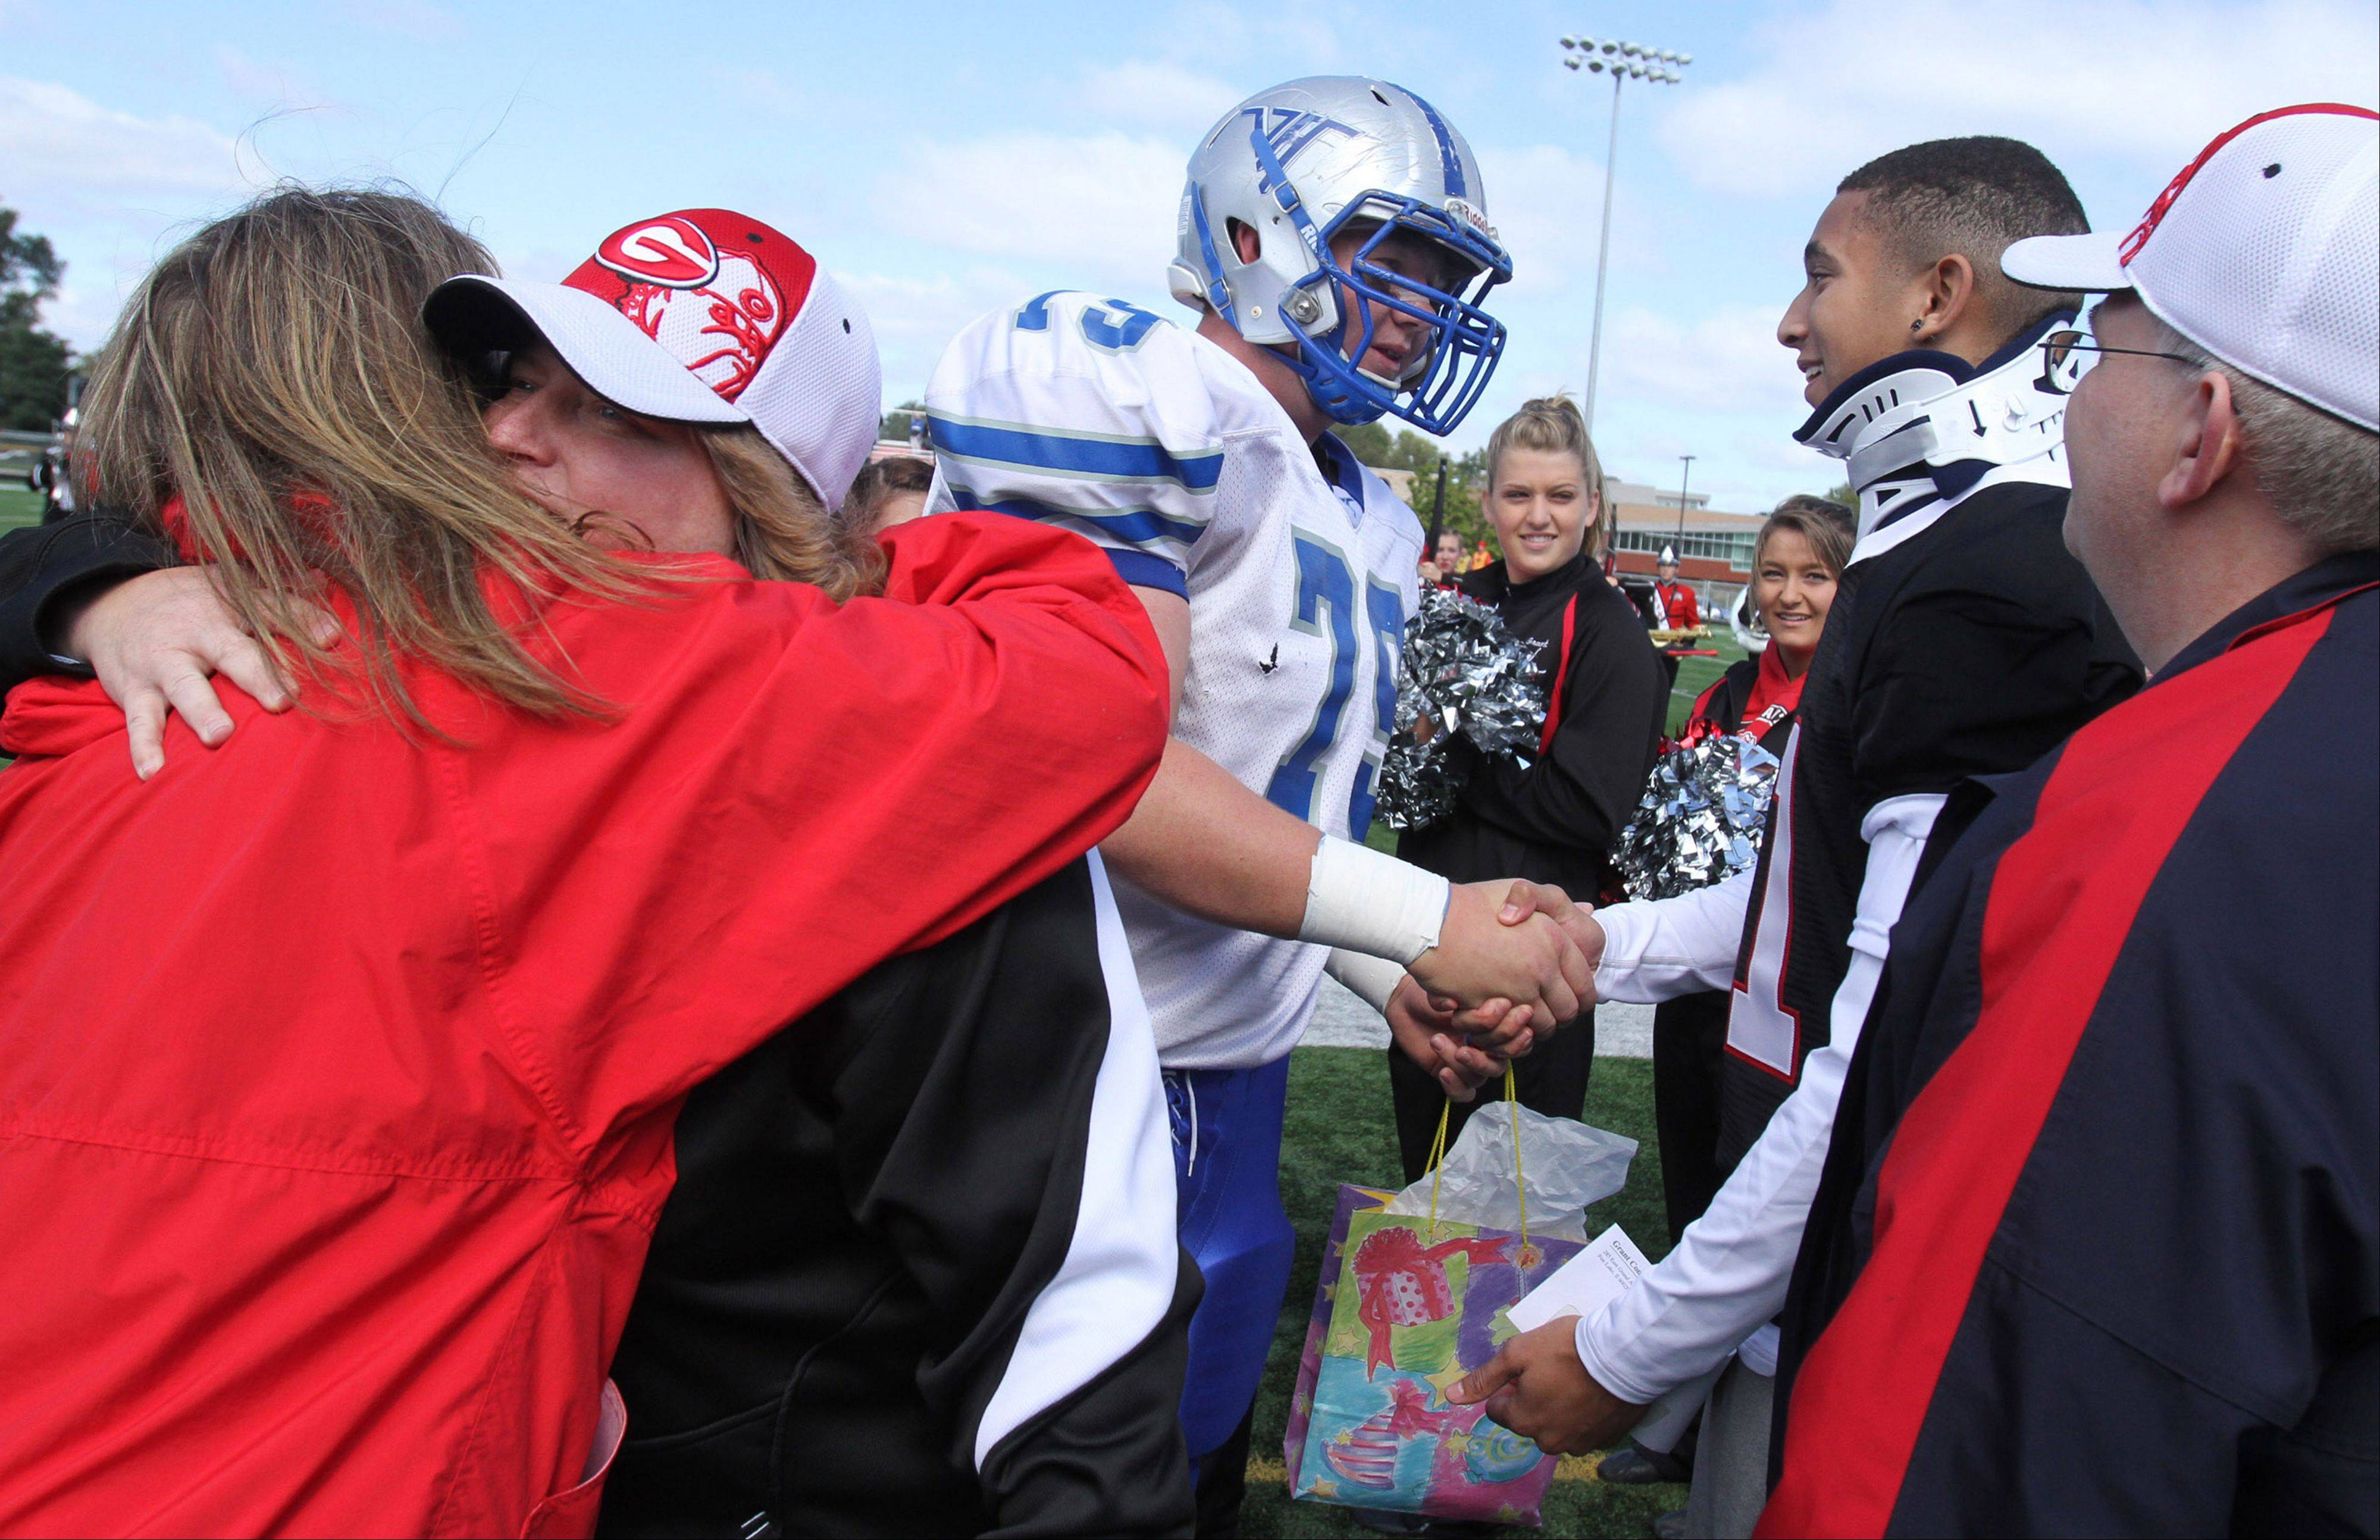 Grant cornerback Chris Gomoll receives a gift and a handshake from Vernon Hills offensive lineman and team captain Drake Randall, as Gomoll's dad Ray looks on and his mom Angie receives a hug before the school's game against Vernon Hills last Saturday.